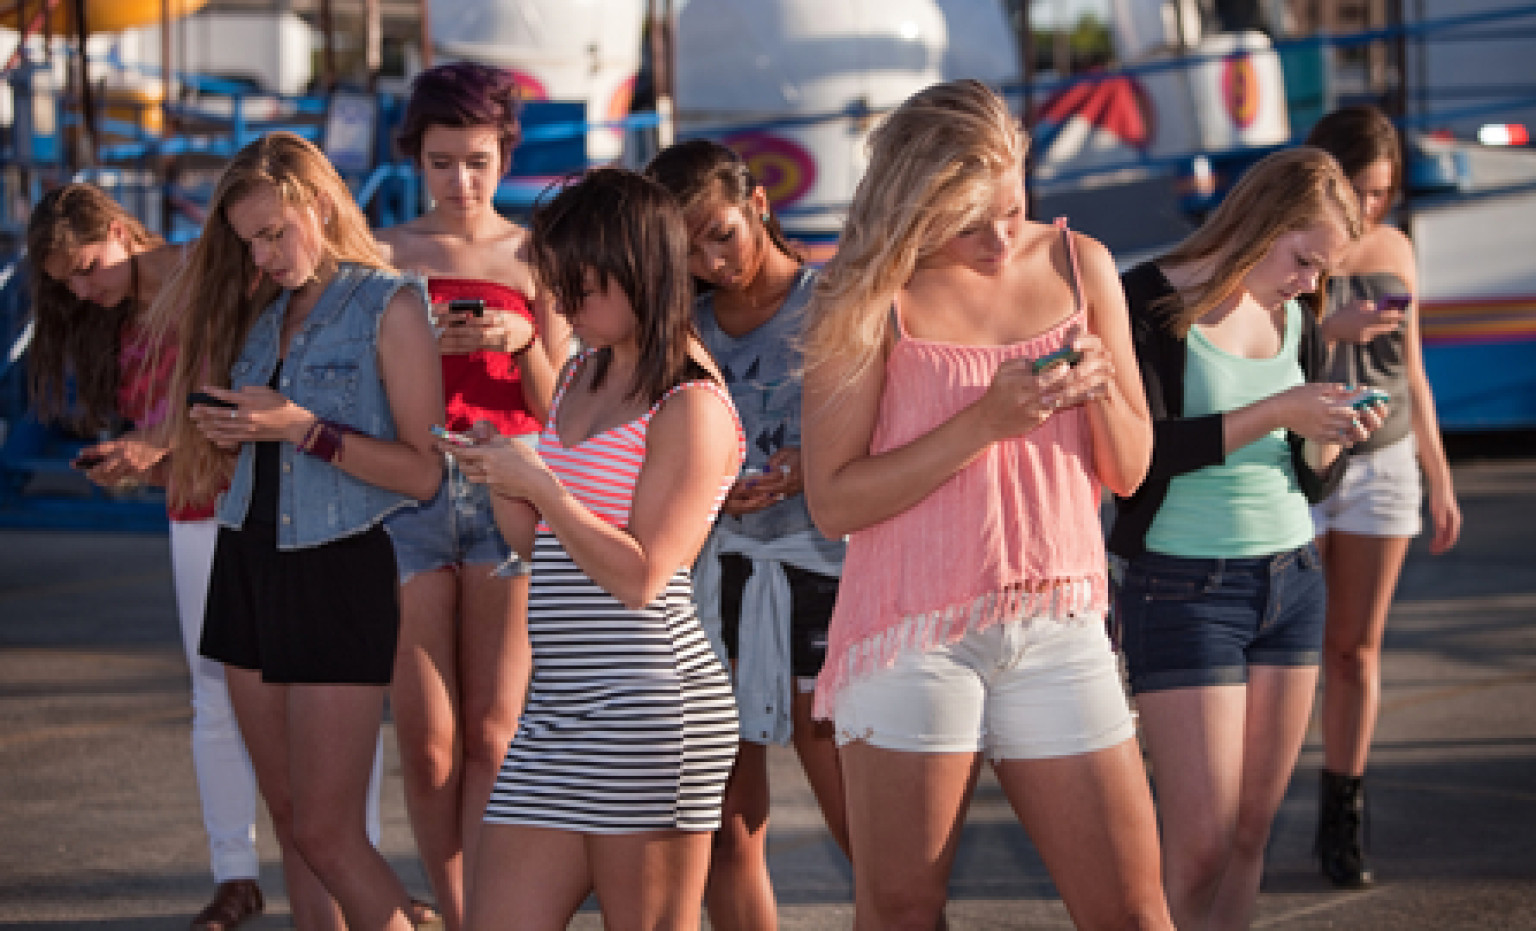 Has The Smartphone Destroyed a Generation? — I N F O  For